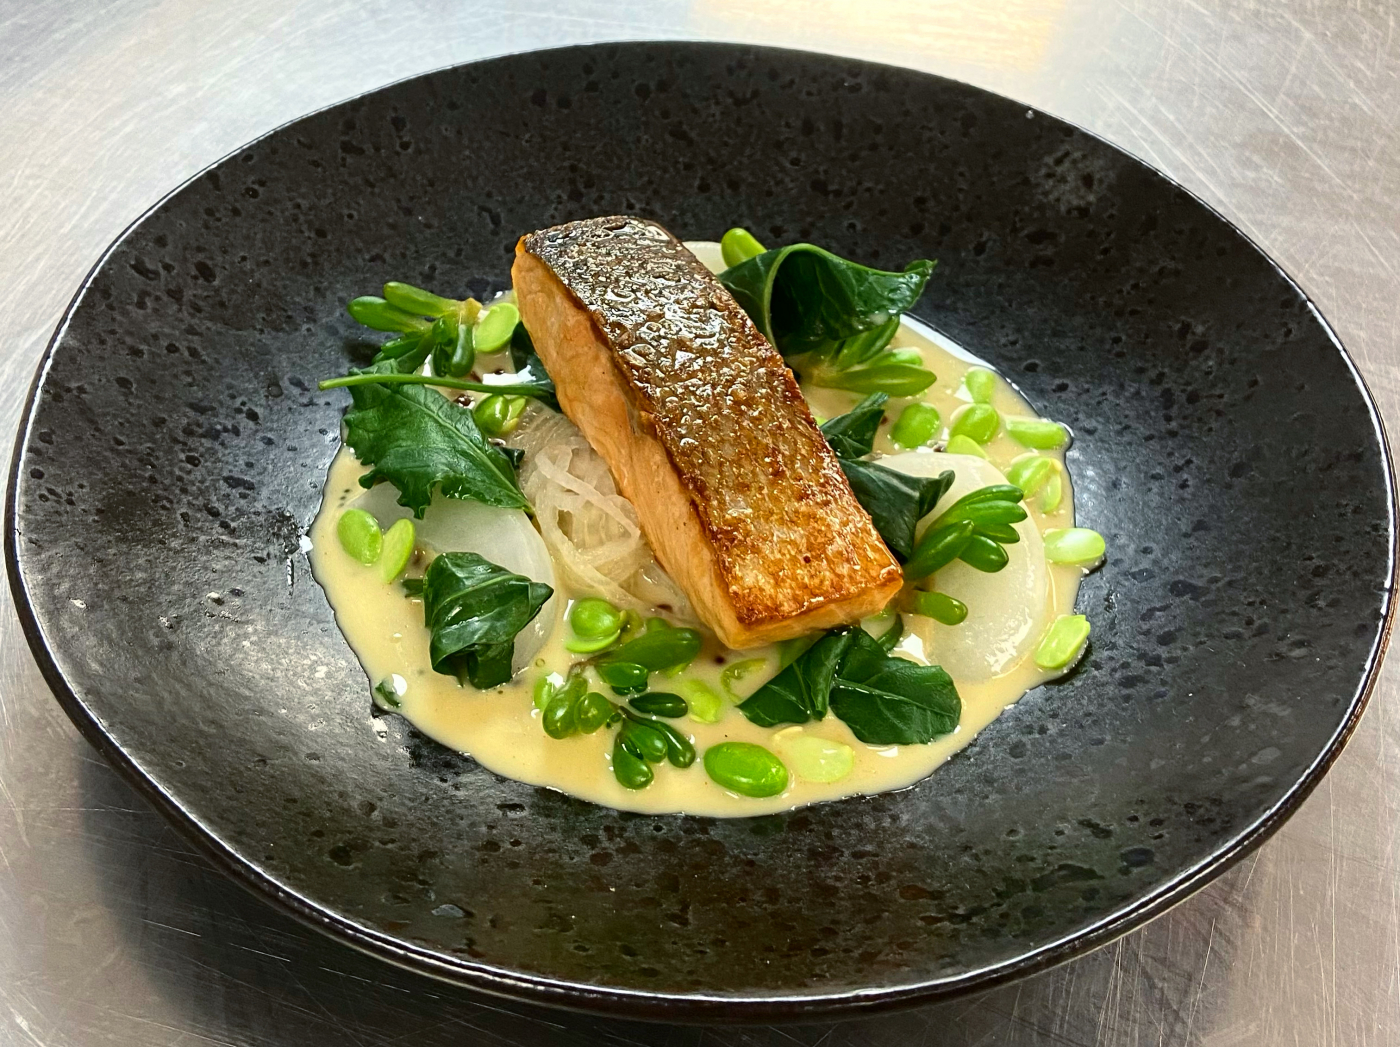 Loch duart salmon, oyster and wasabi sauce, sake and mirin mooli, turnip, edamame beans and sea vegetables